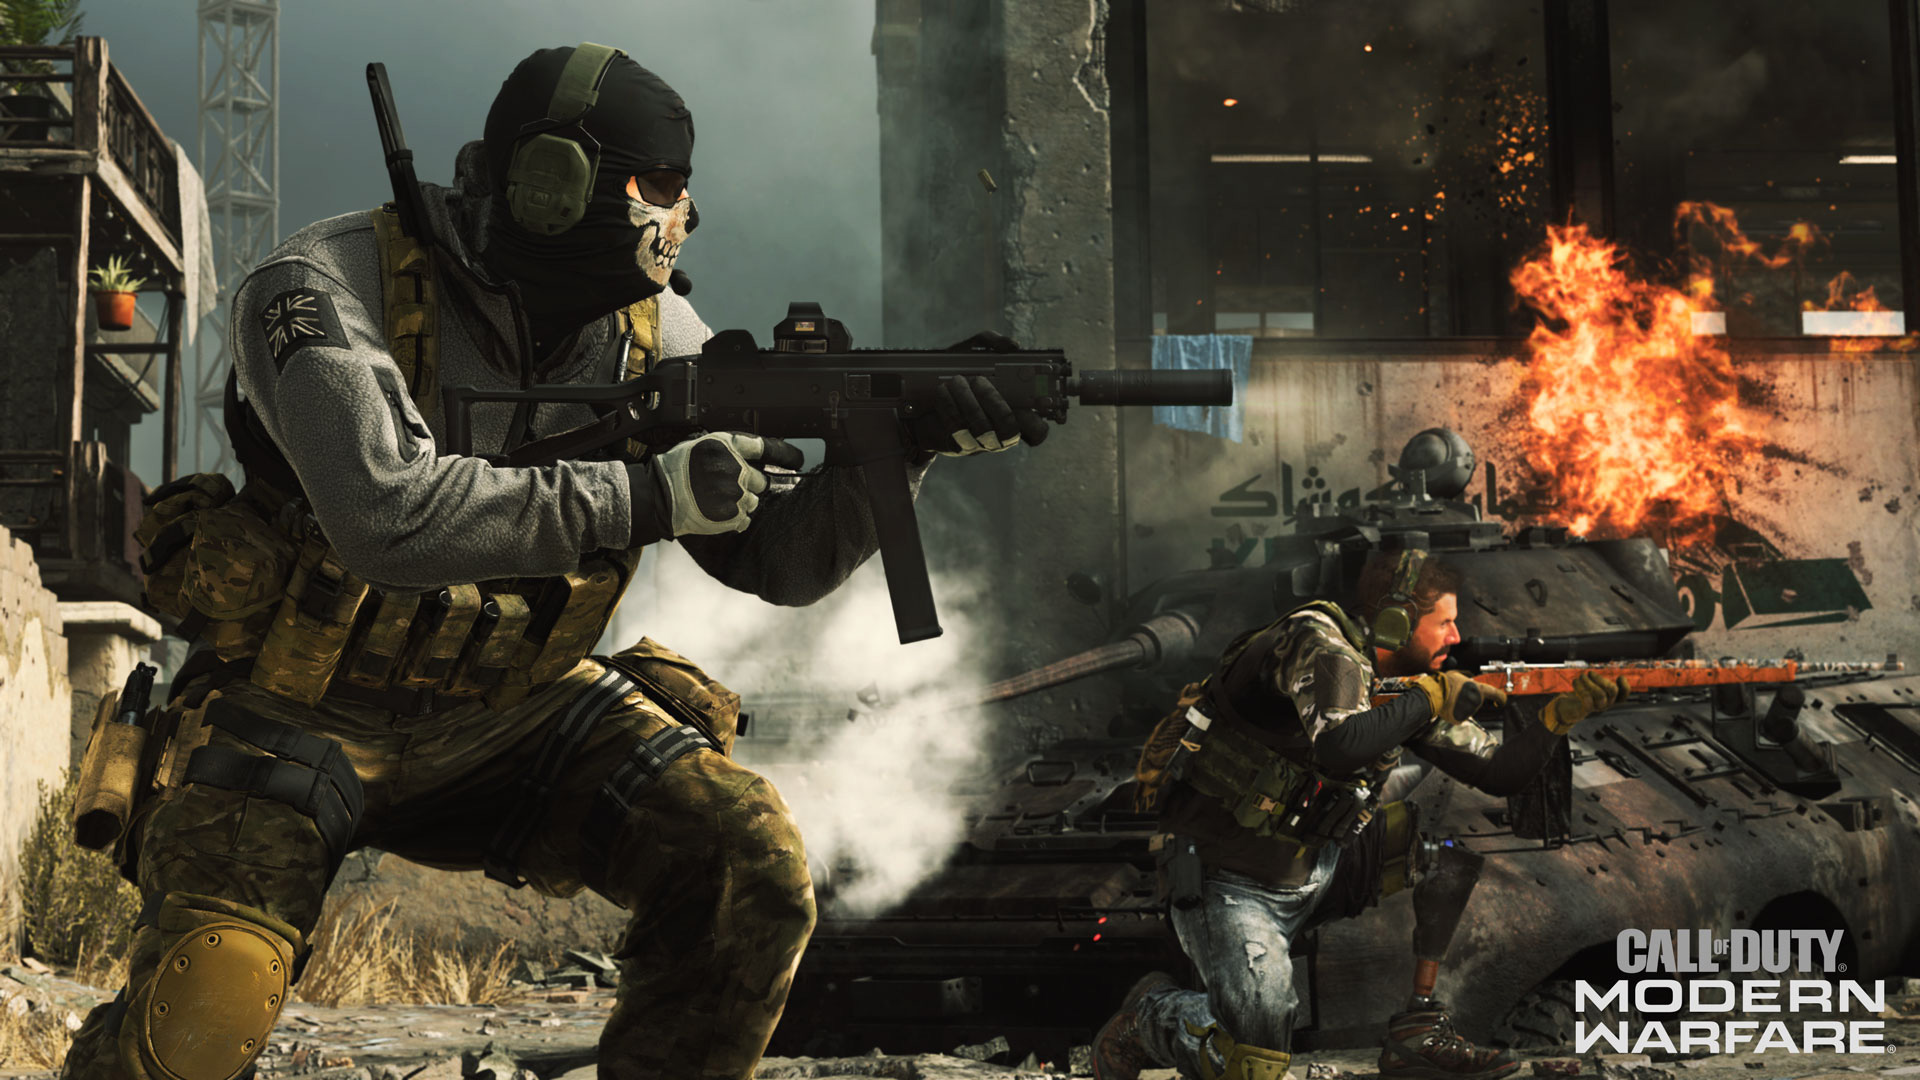 Call Of Duty Warzone Has A Free Trial For Modern Warfare